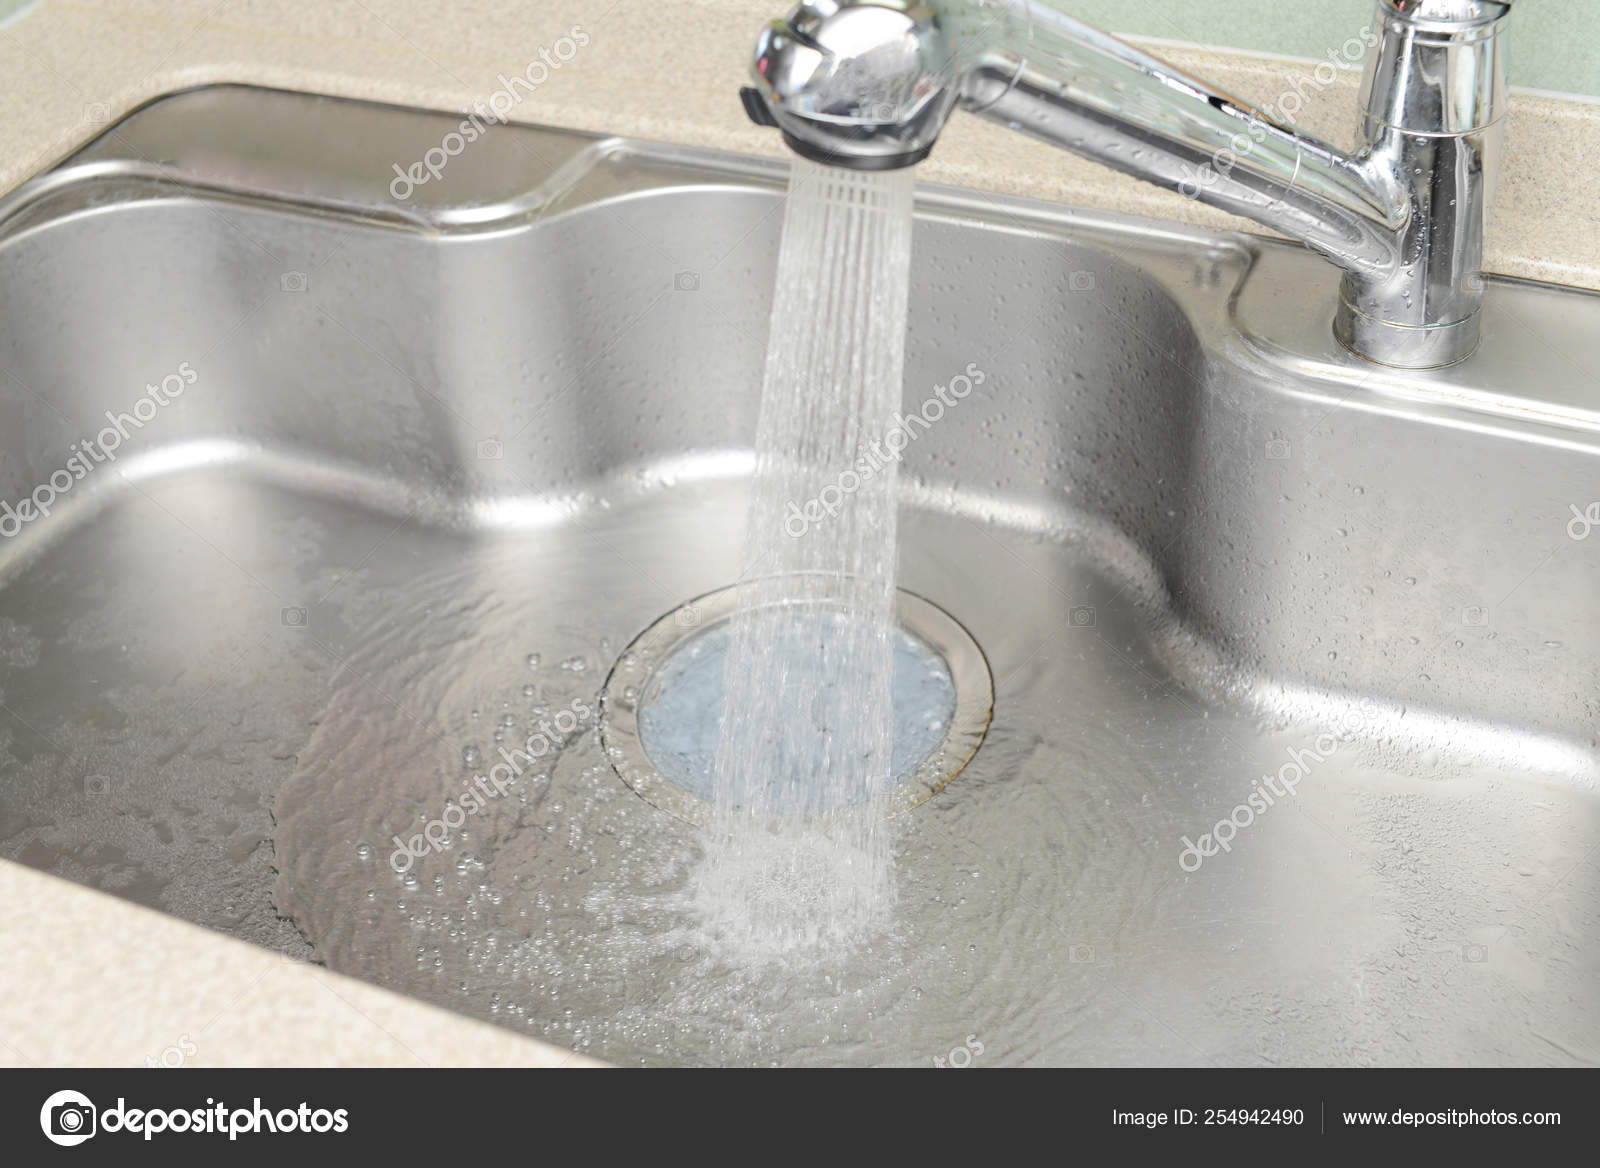 Stainless Steel Kitchen Faucet Sink Running Water Stock Photo C Liza5450 254942490